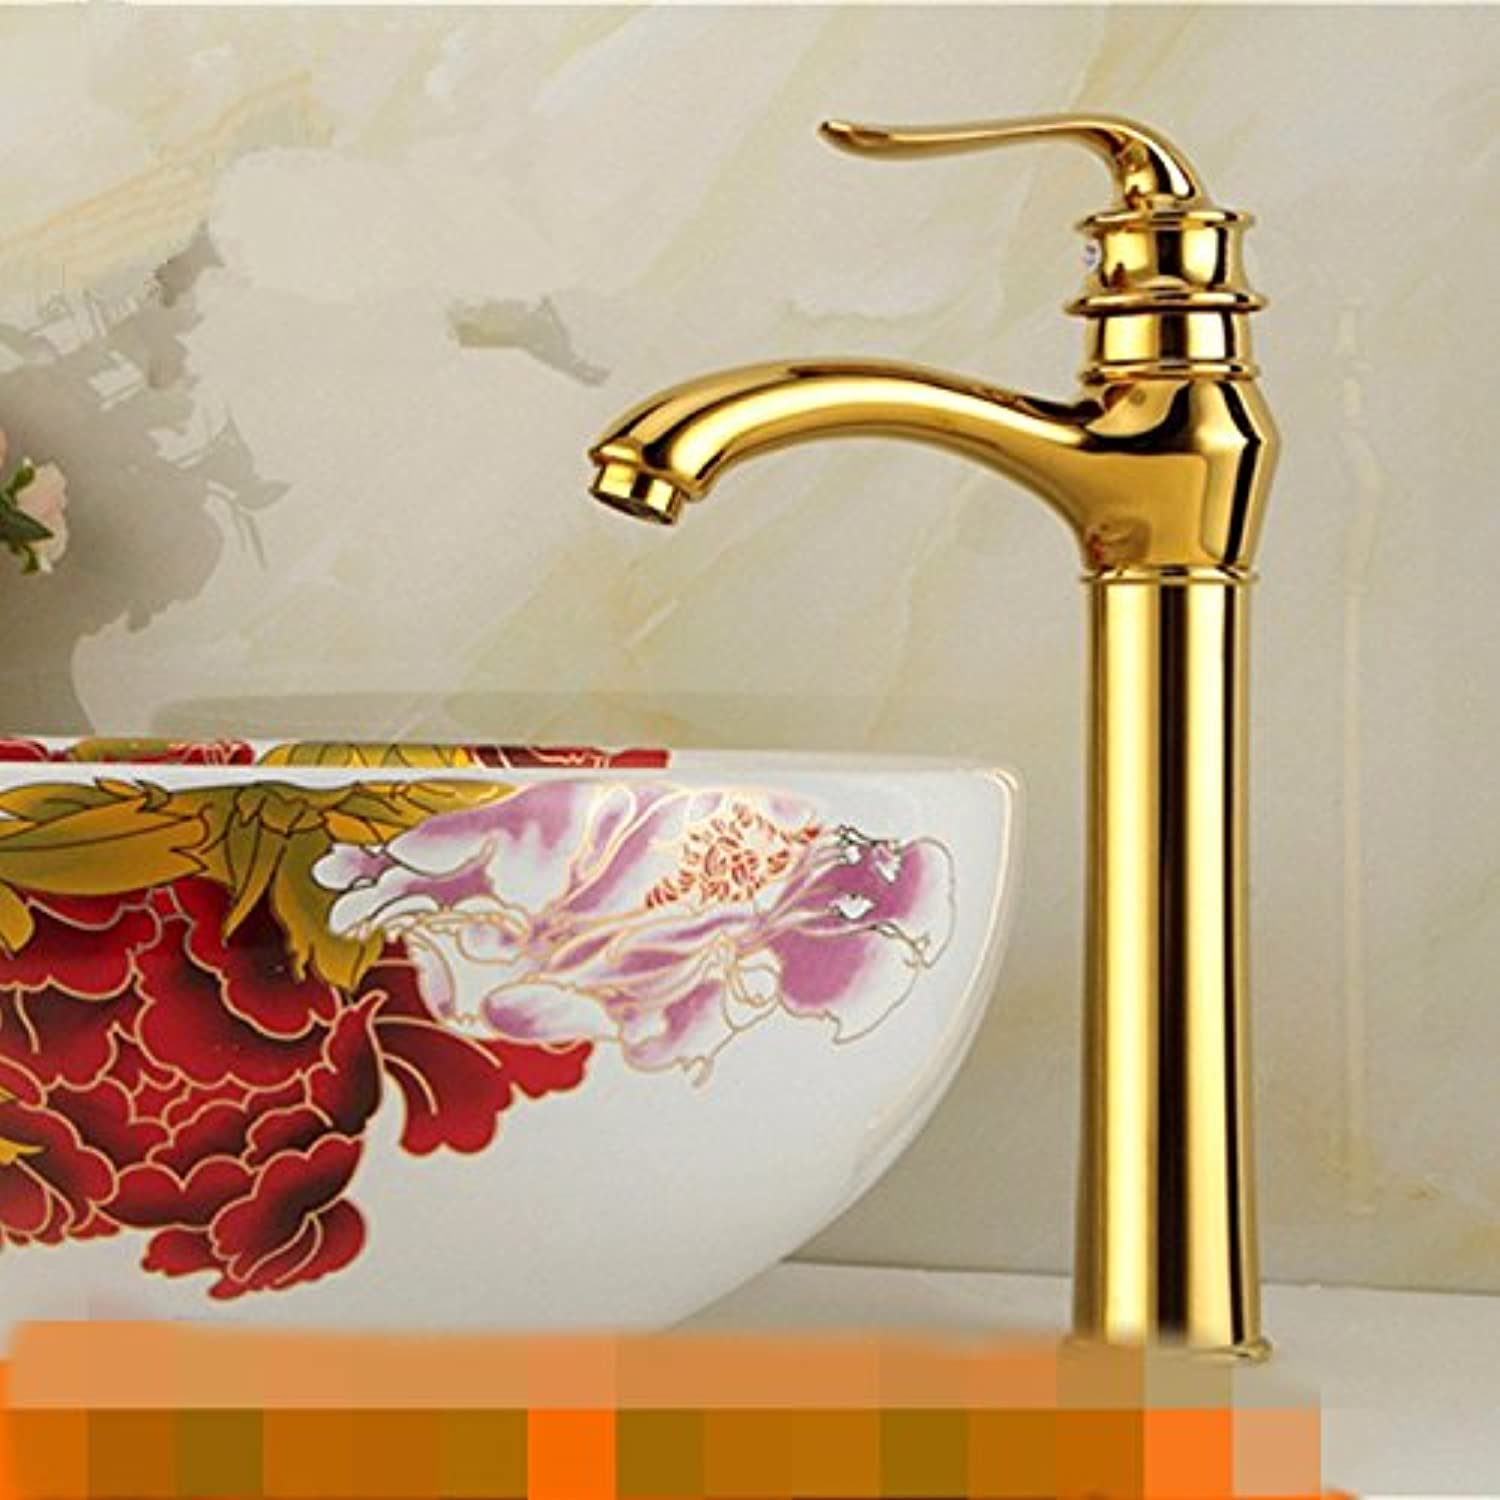 LHbox Basin Mixer Tap Bathroom Sink Faucet Antique copper faucet full continental basin cold water Single Hole